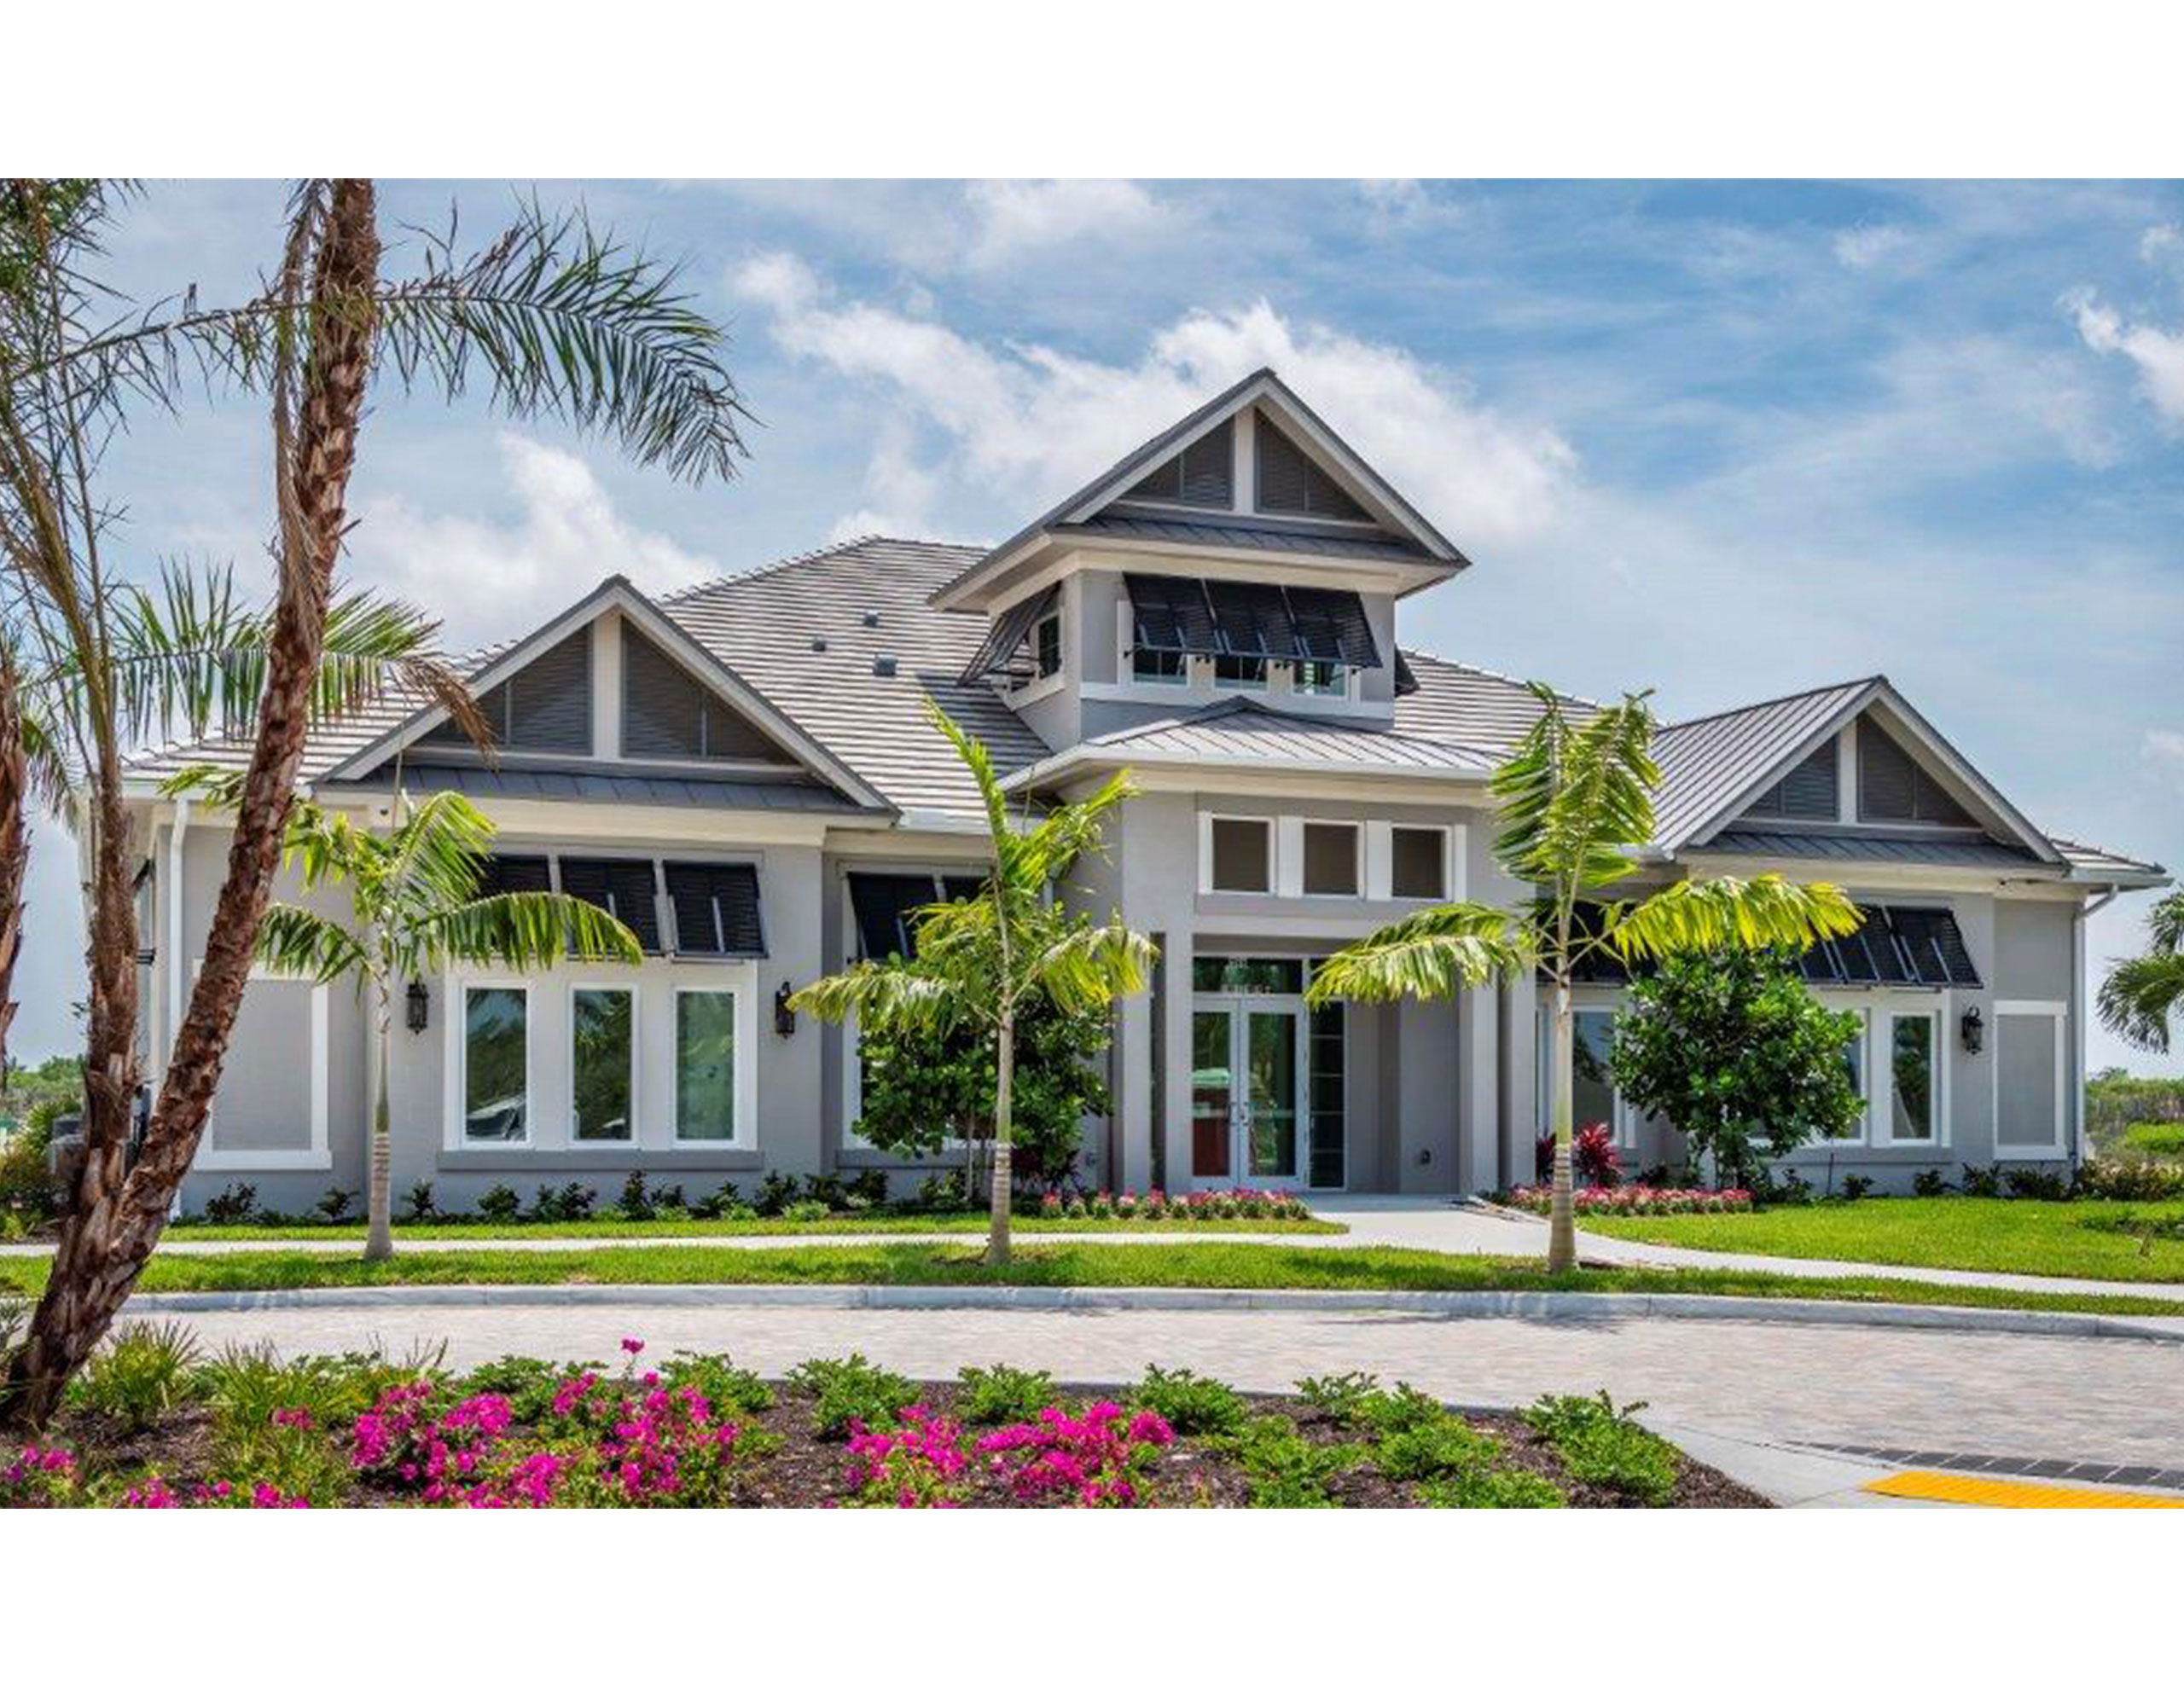 Flamingo Club Exterior   Antilles of Naples, Florida - West Indies Styled Residential Resort